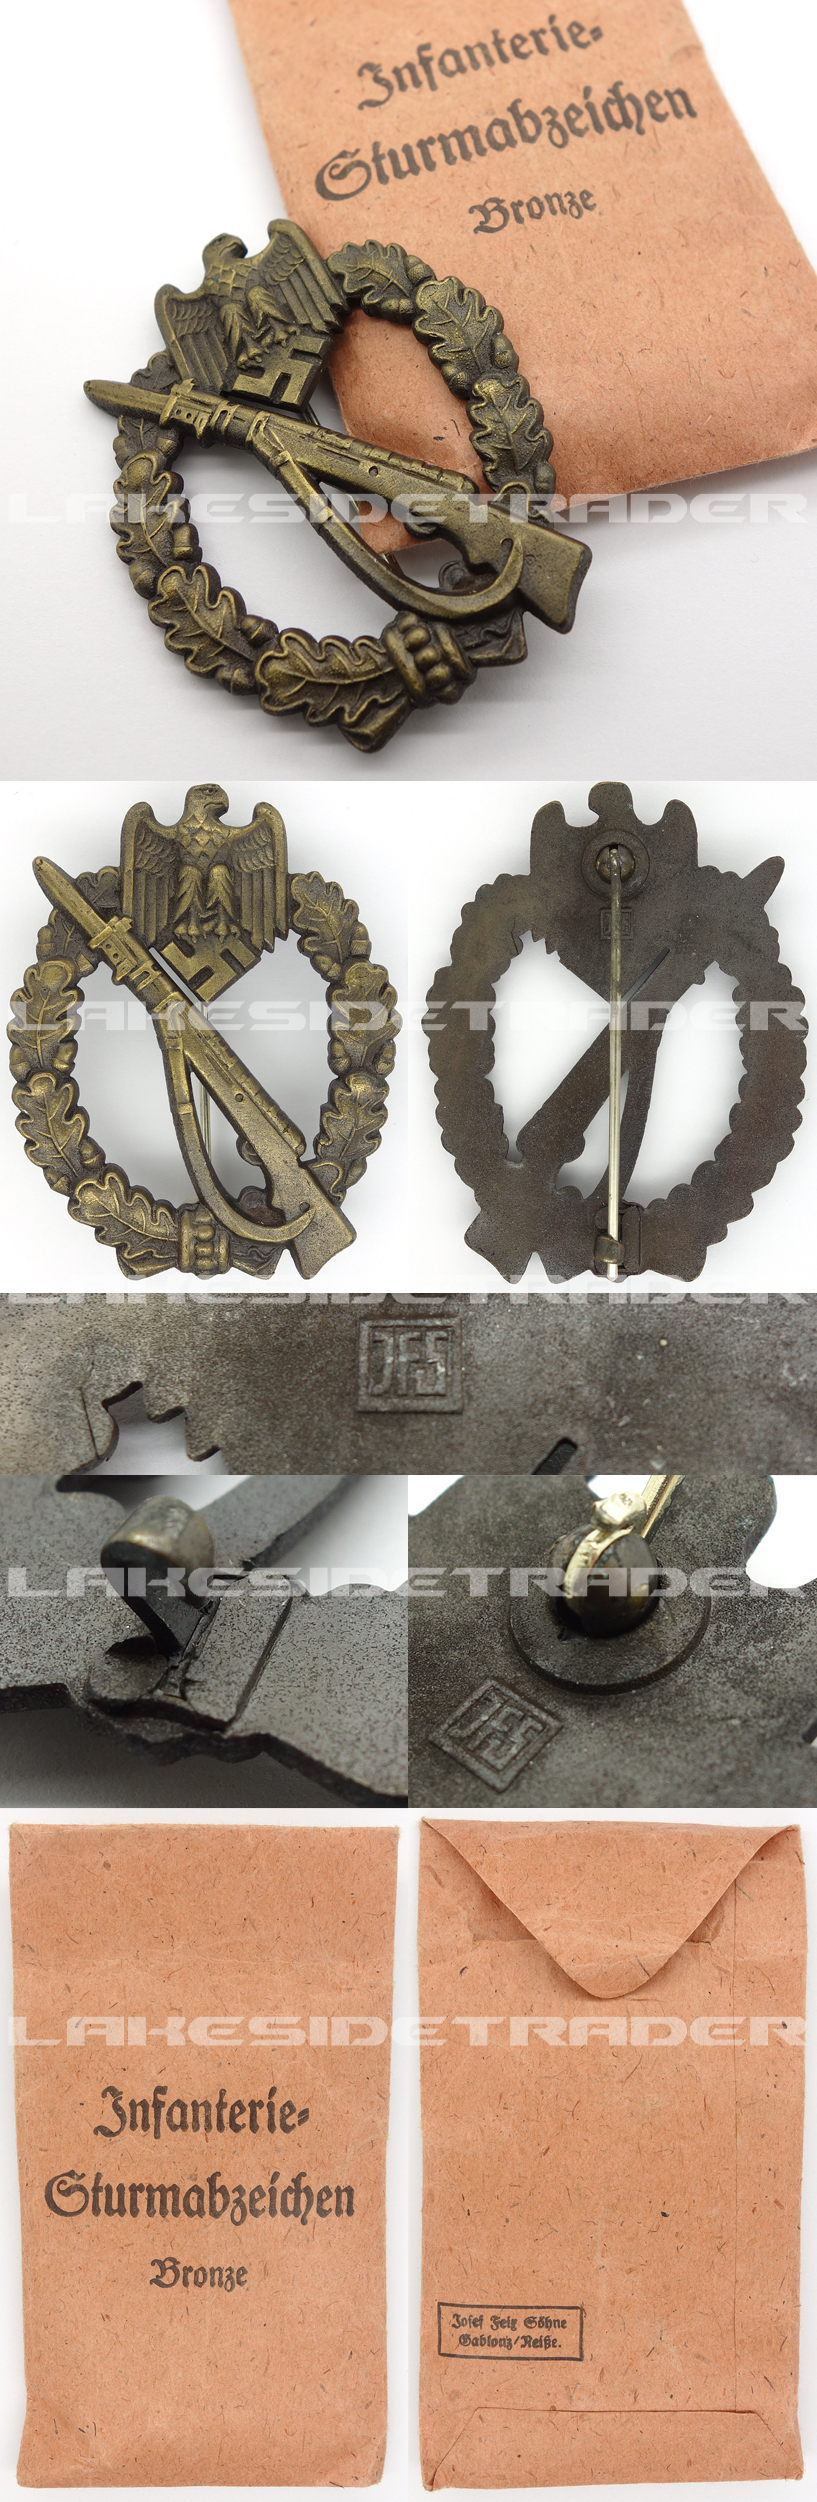 Issue Packet – Bronze Infantry Assault Badge by JFS